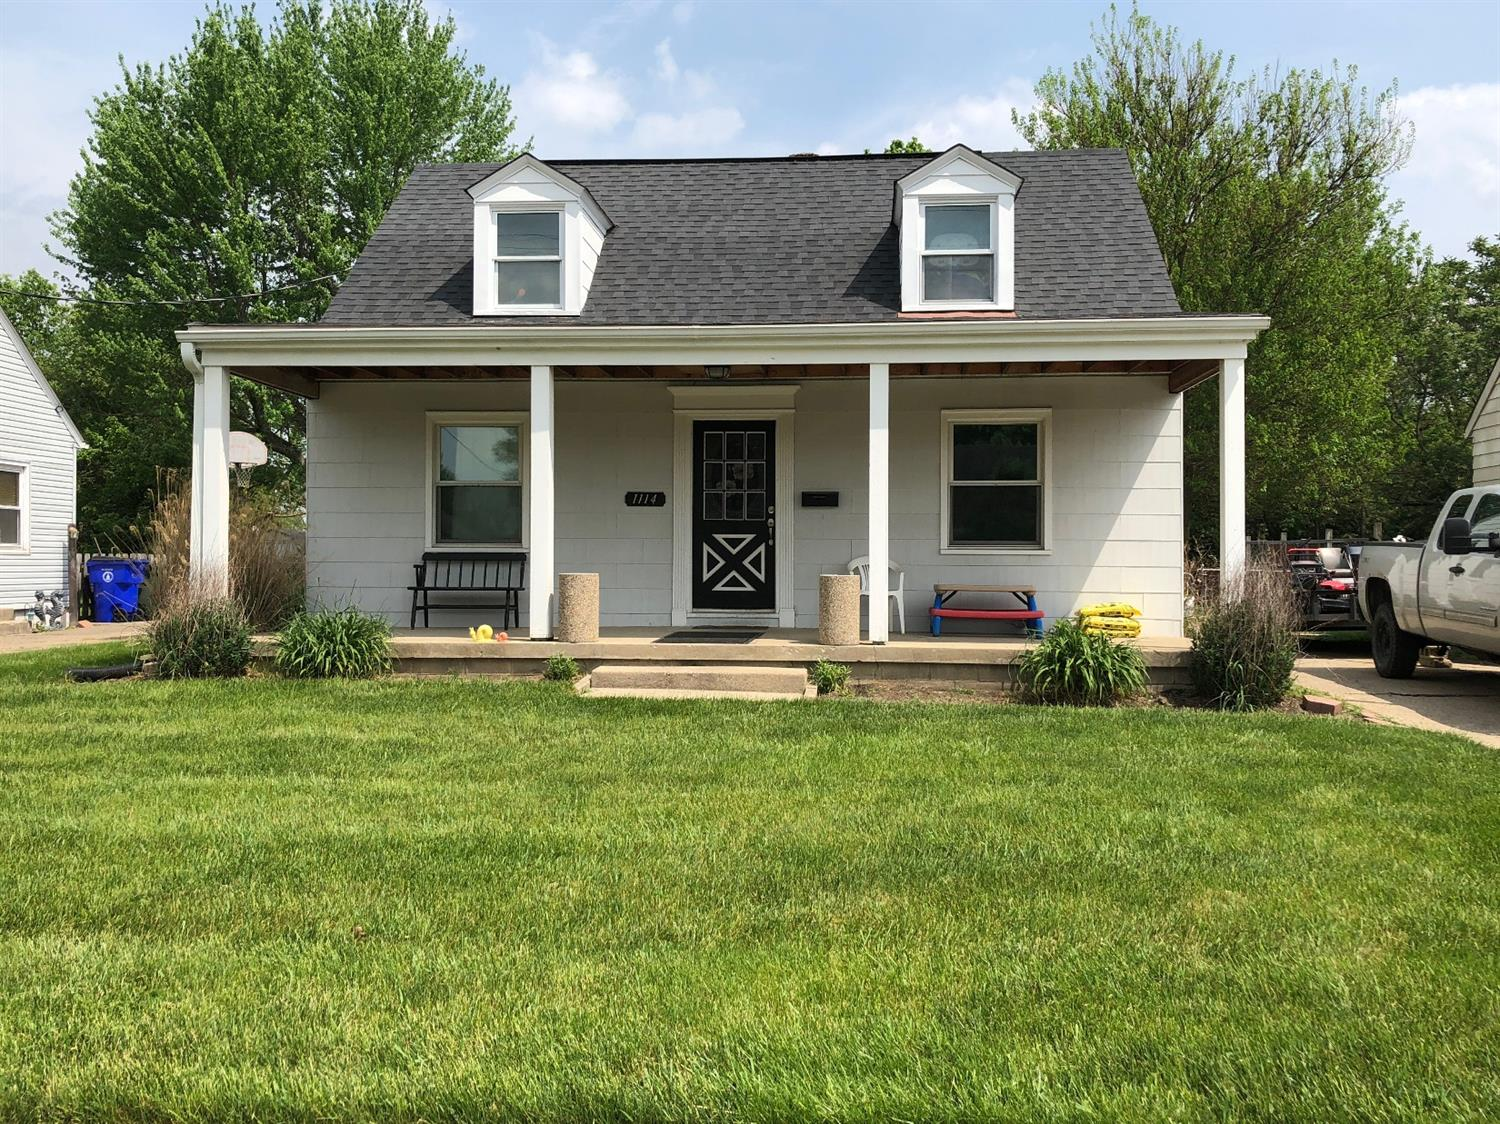 1114 St Cair Ave Lindenwald, OH